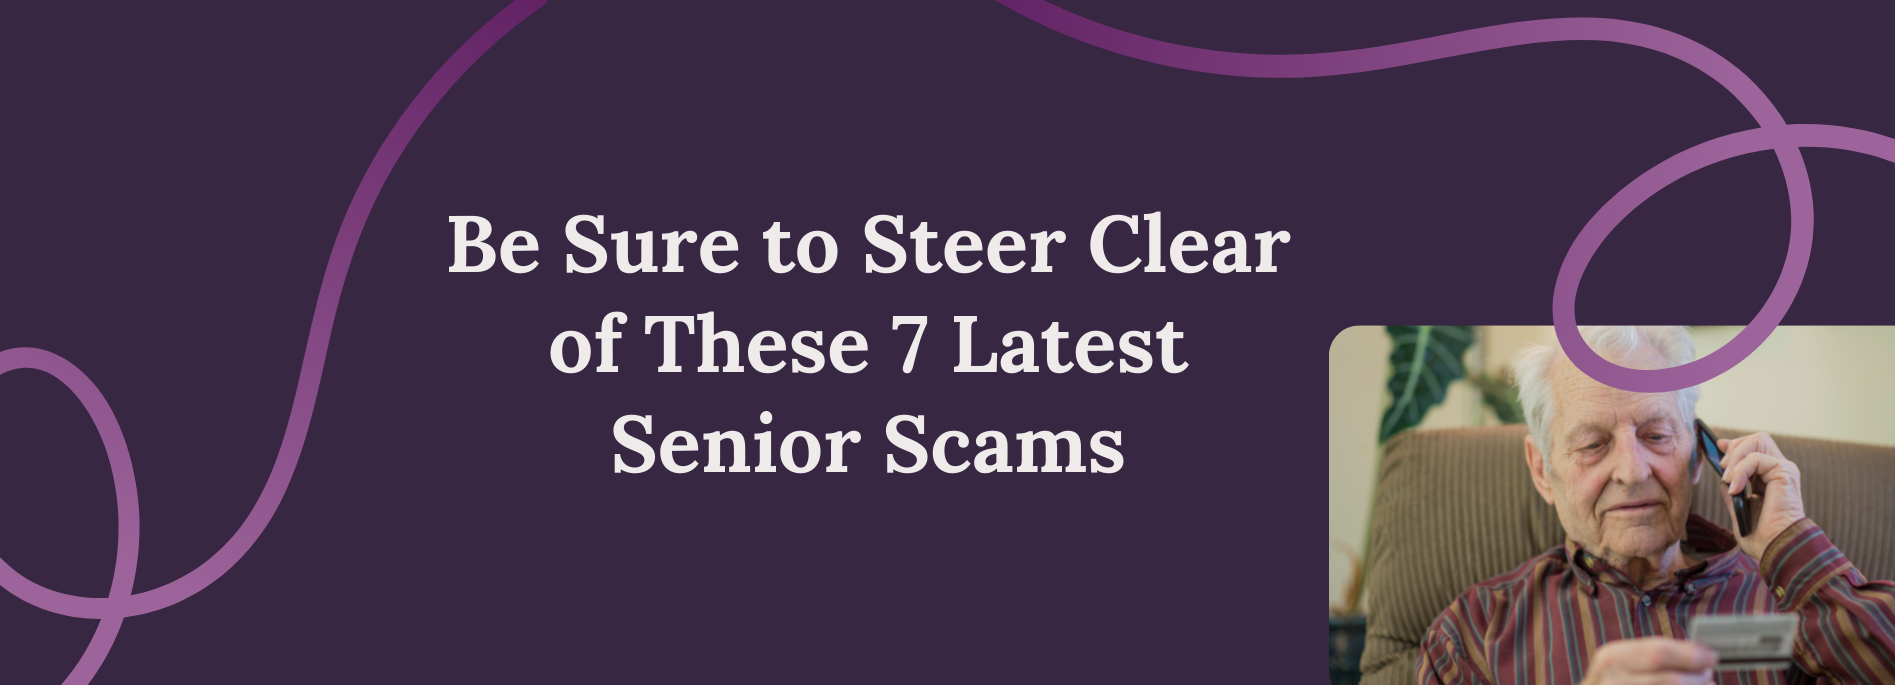 Be Aware of These 7 Senior Scams